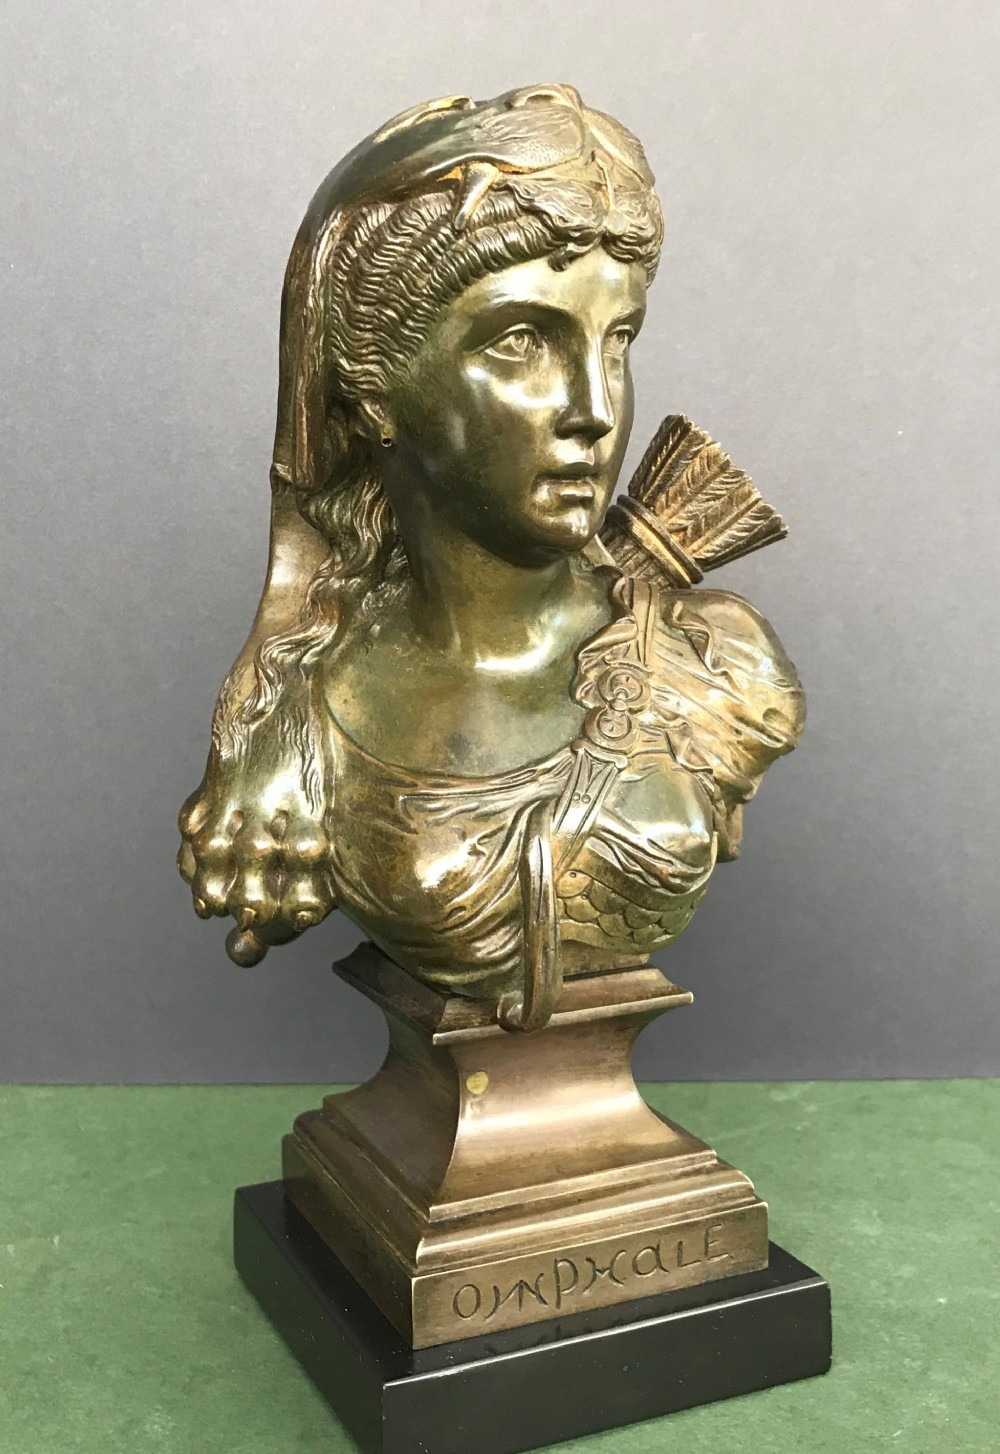 19th century bronze bust of omphale on a marble base